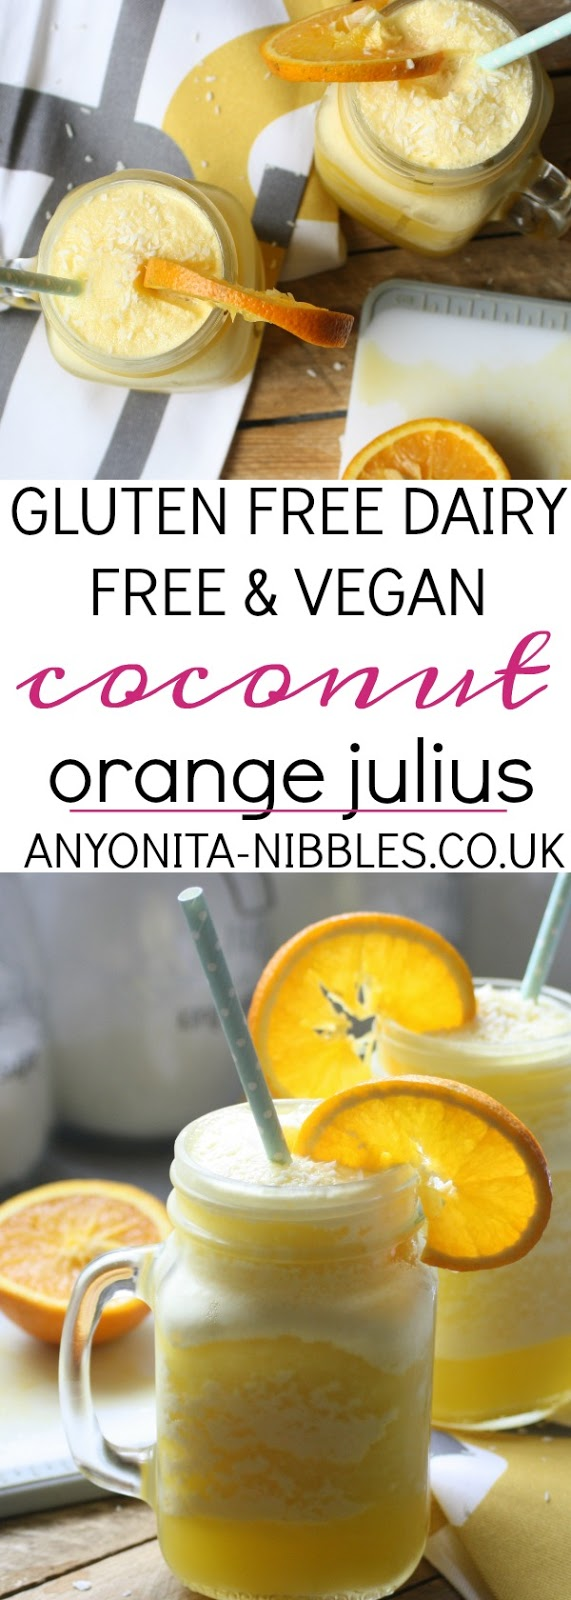 This frothy iced orange and milk drink is the perfect way to cool down in summer and suitable for vegans!